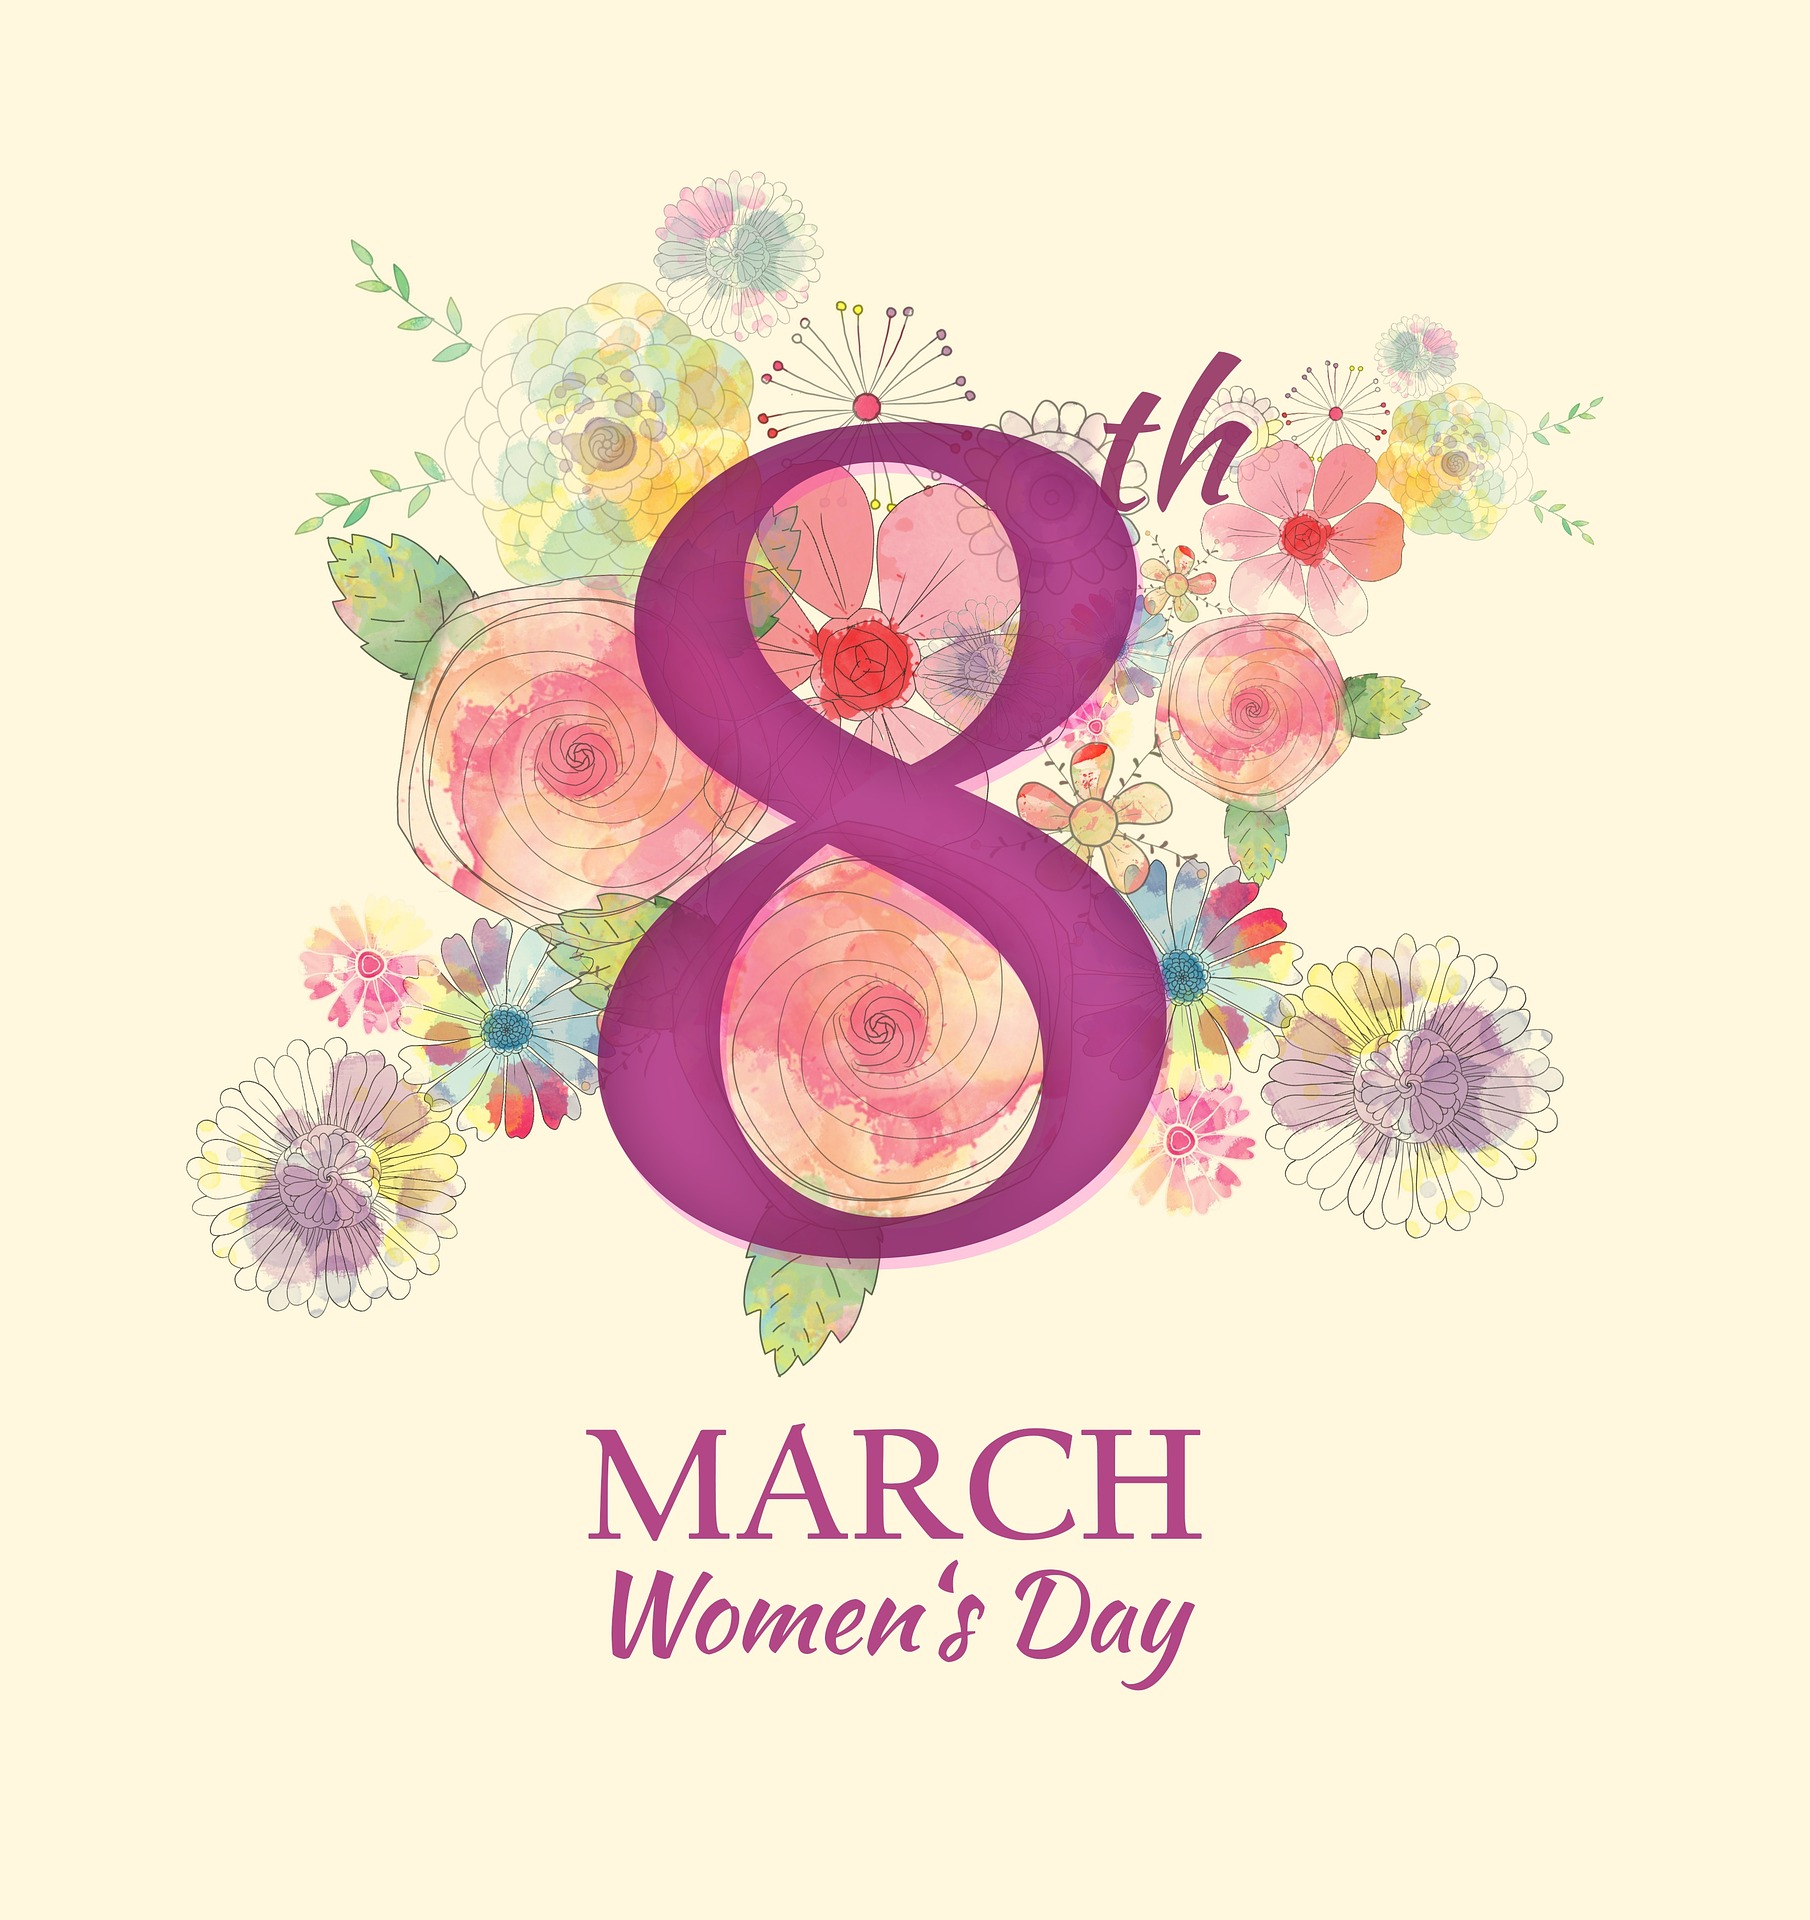 International Women's Day – March 8th